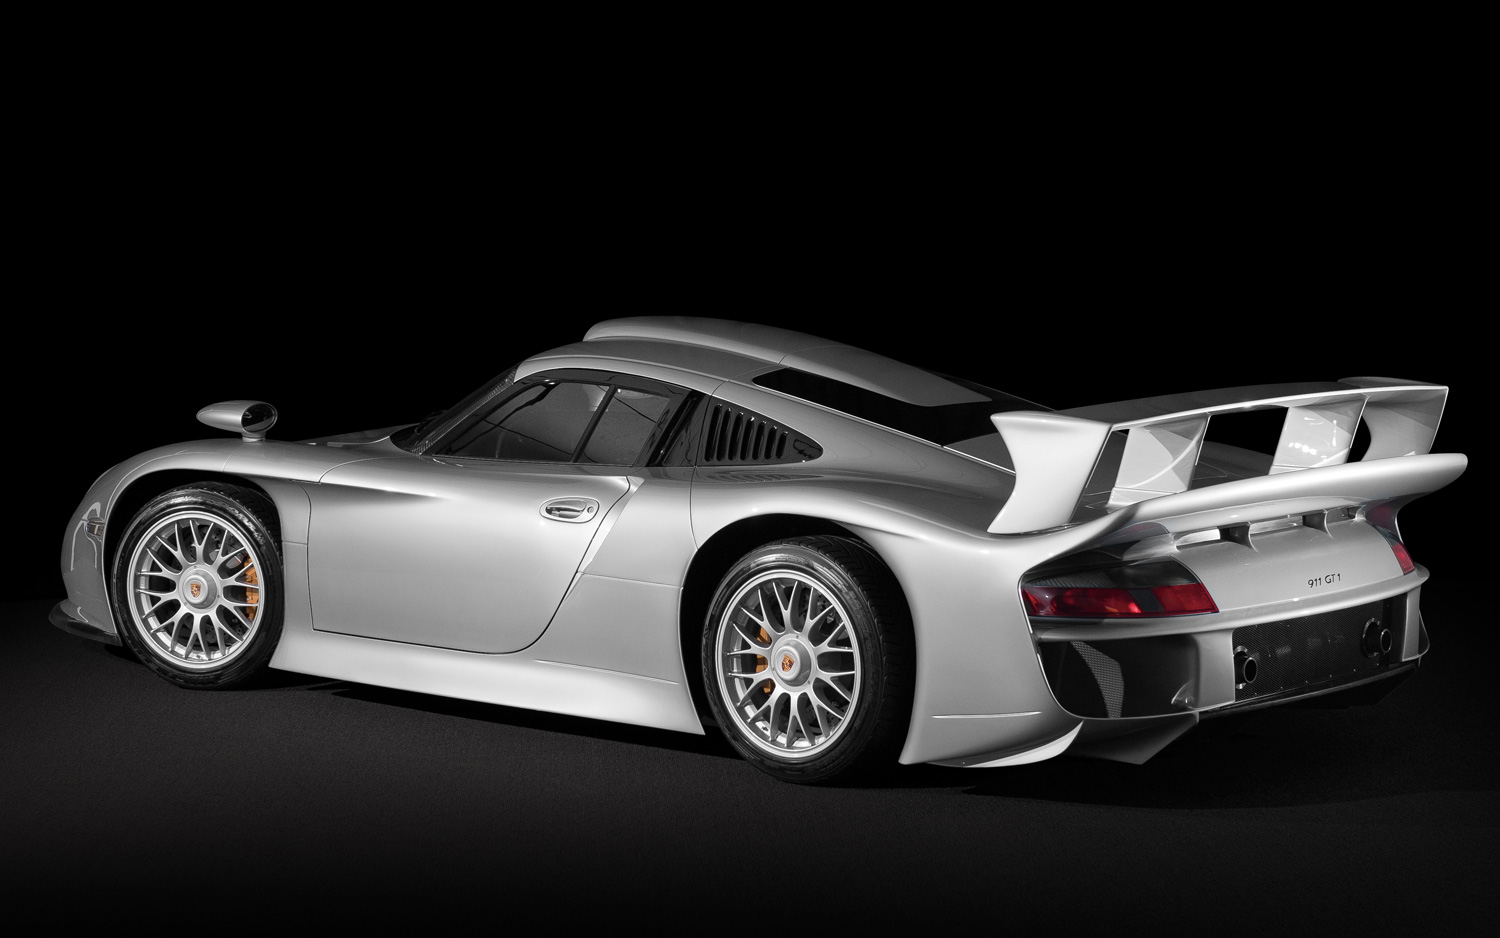 porsche 911 gt1 the standard by which all porsche are measured ticktickvroom car blog and. Black Bedroom Furniture Sets. Home Design Ideas